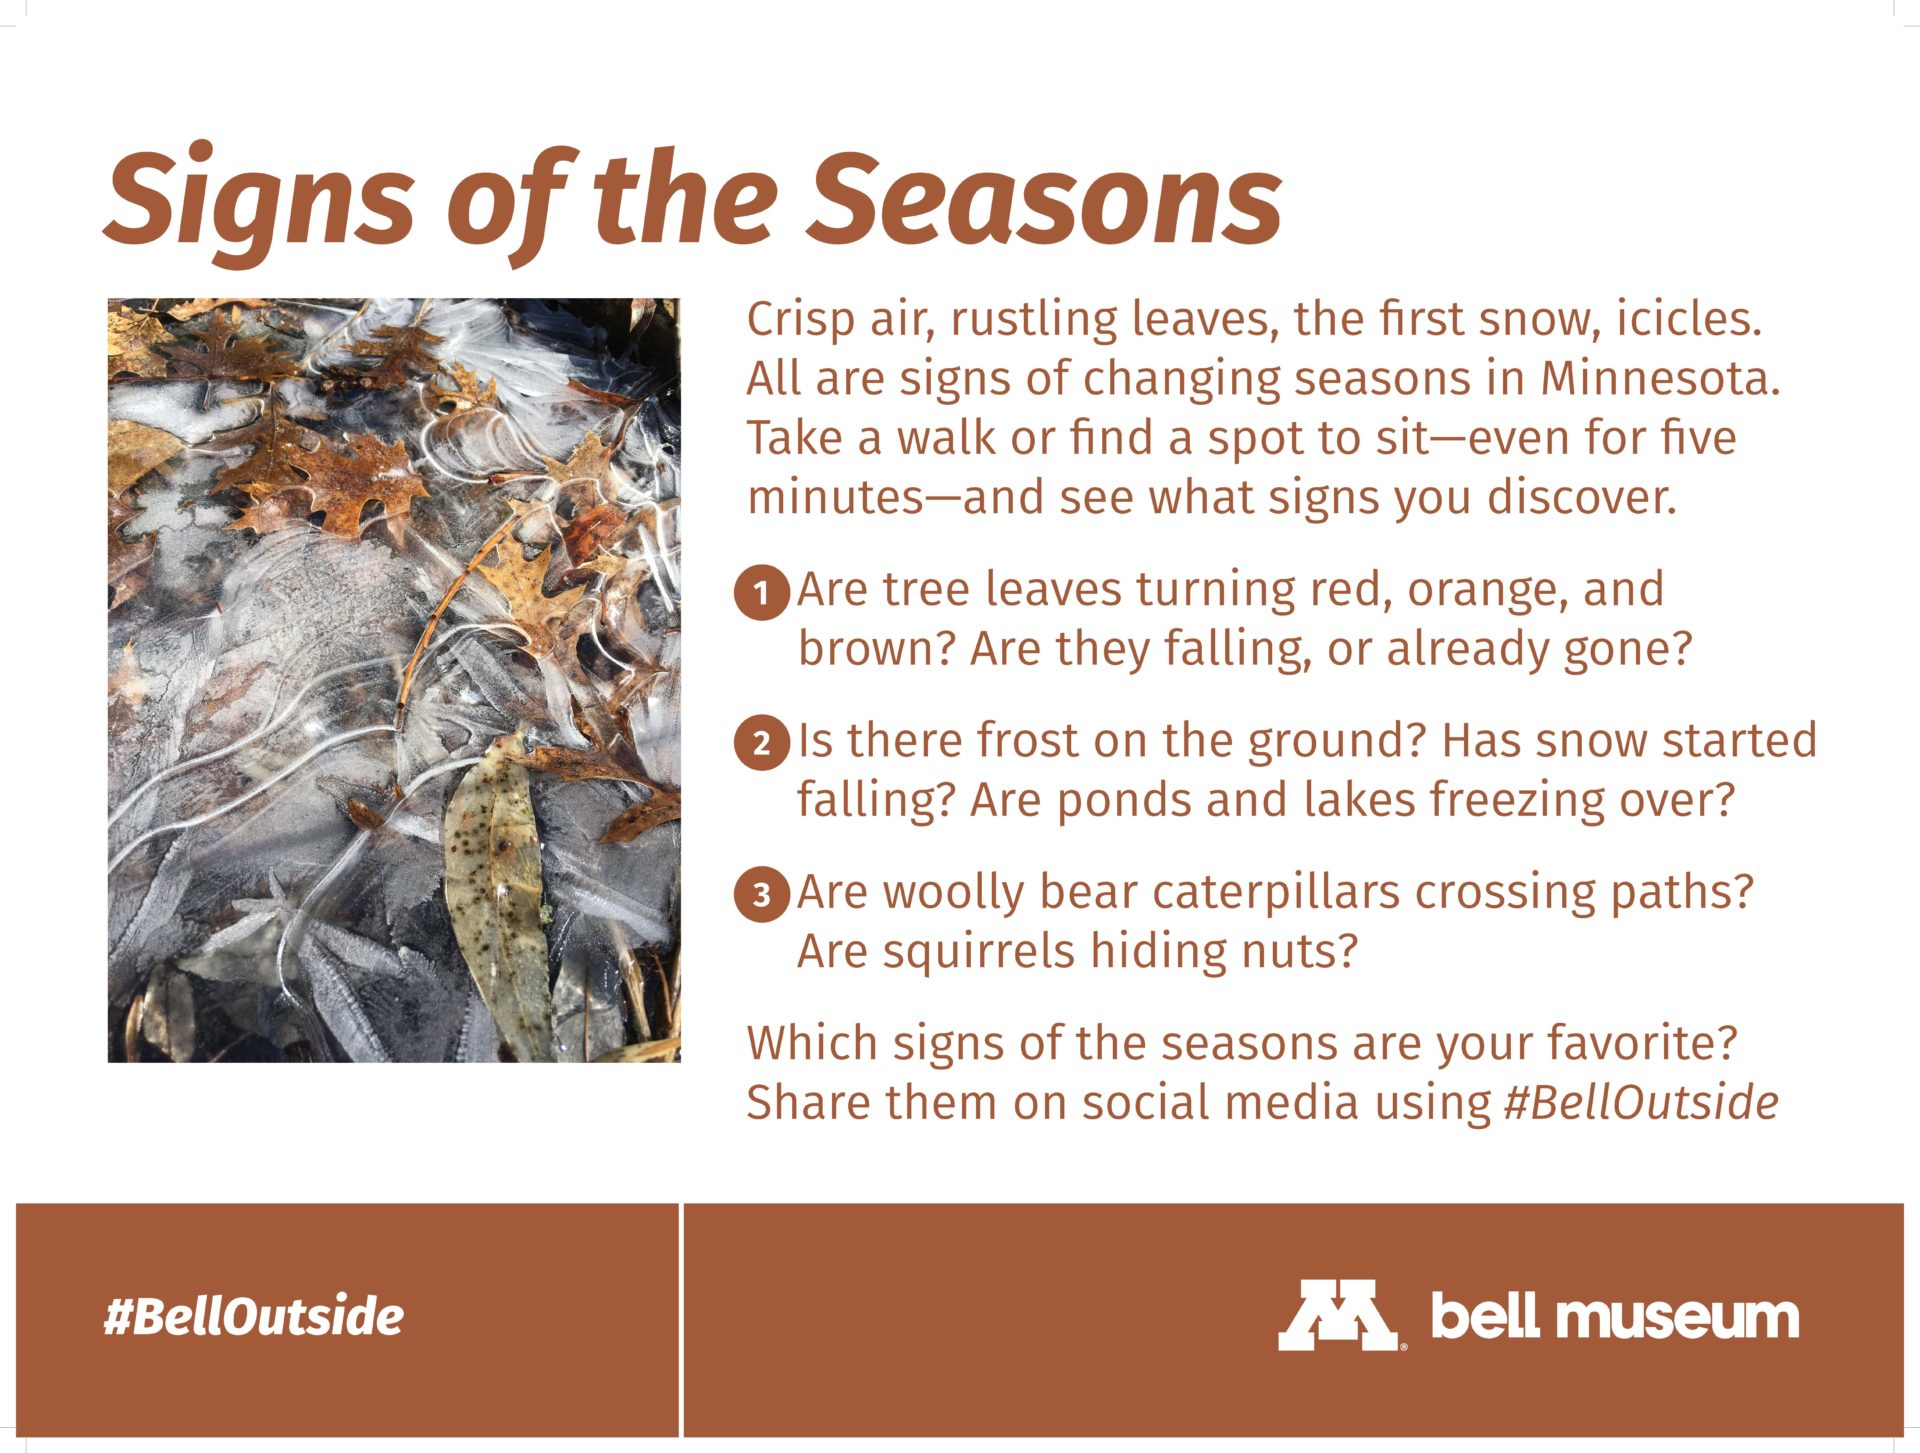 Signs of the Seasons. Crisp air, rustling leaves, the first snow, icicles. All are signs of changing seasons in Minnesota. Take a walk or find a spot to sit—even for five minutes—and see what signs you discover.